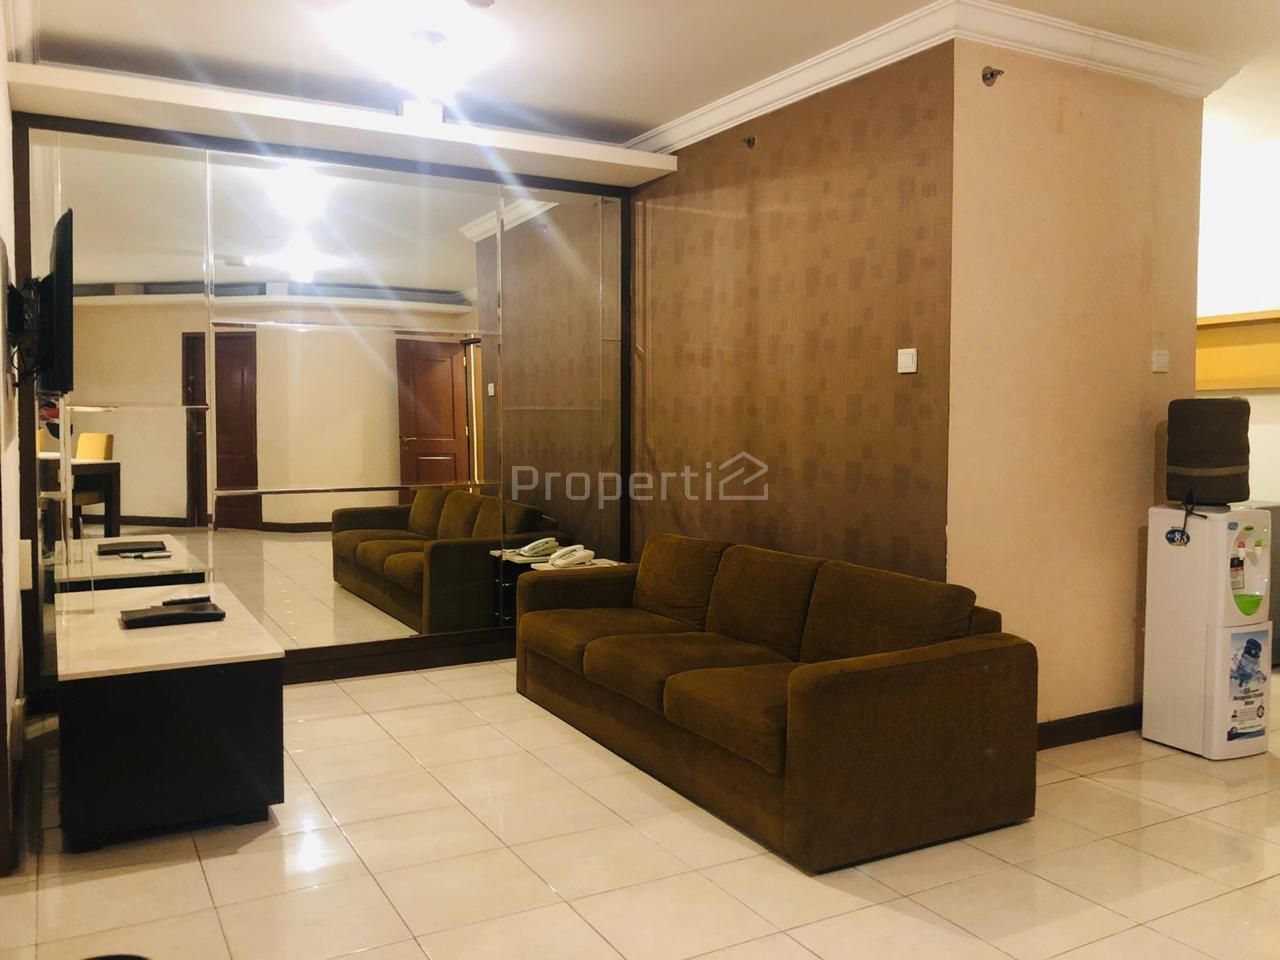 3BR Apartment Unit at The Majesty, 10th Floor, Kota Bandung